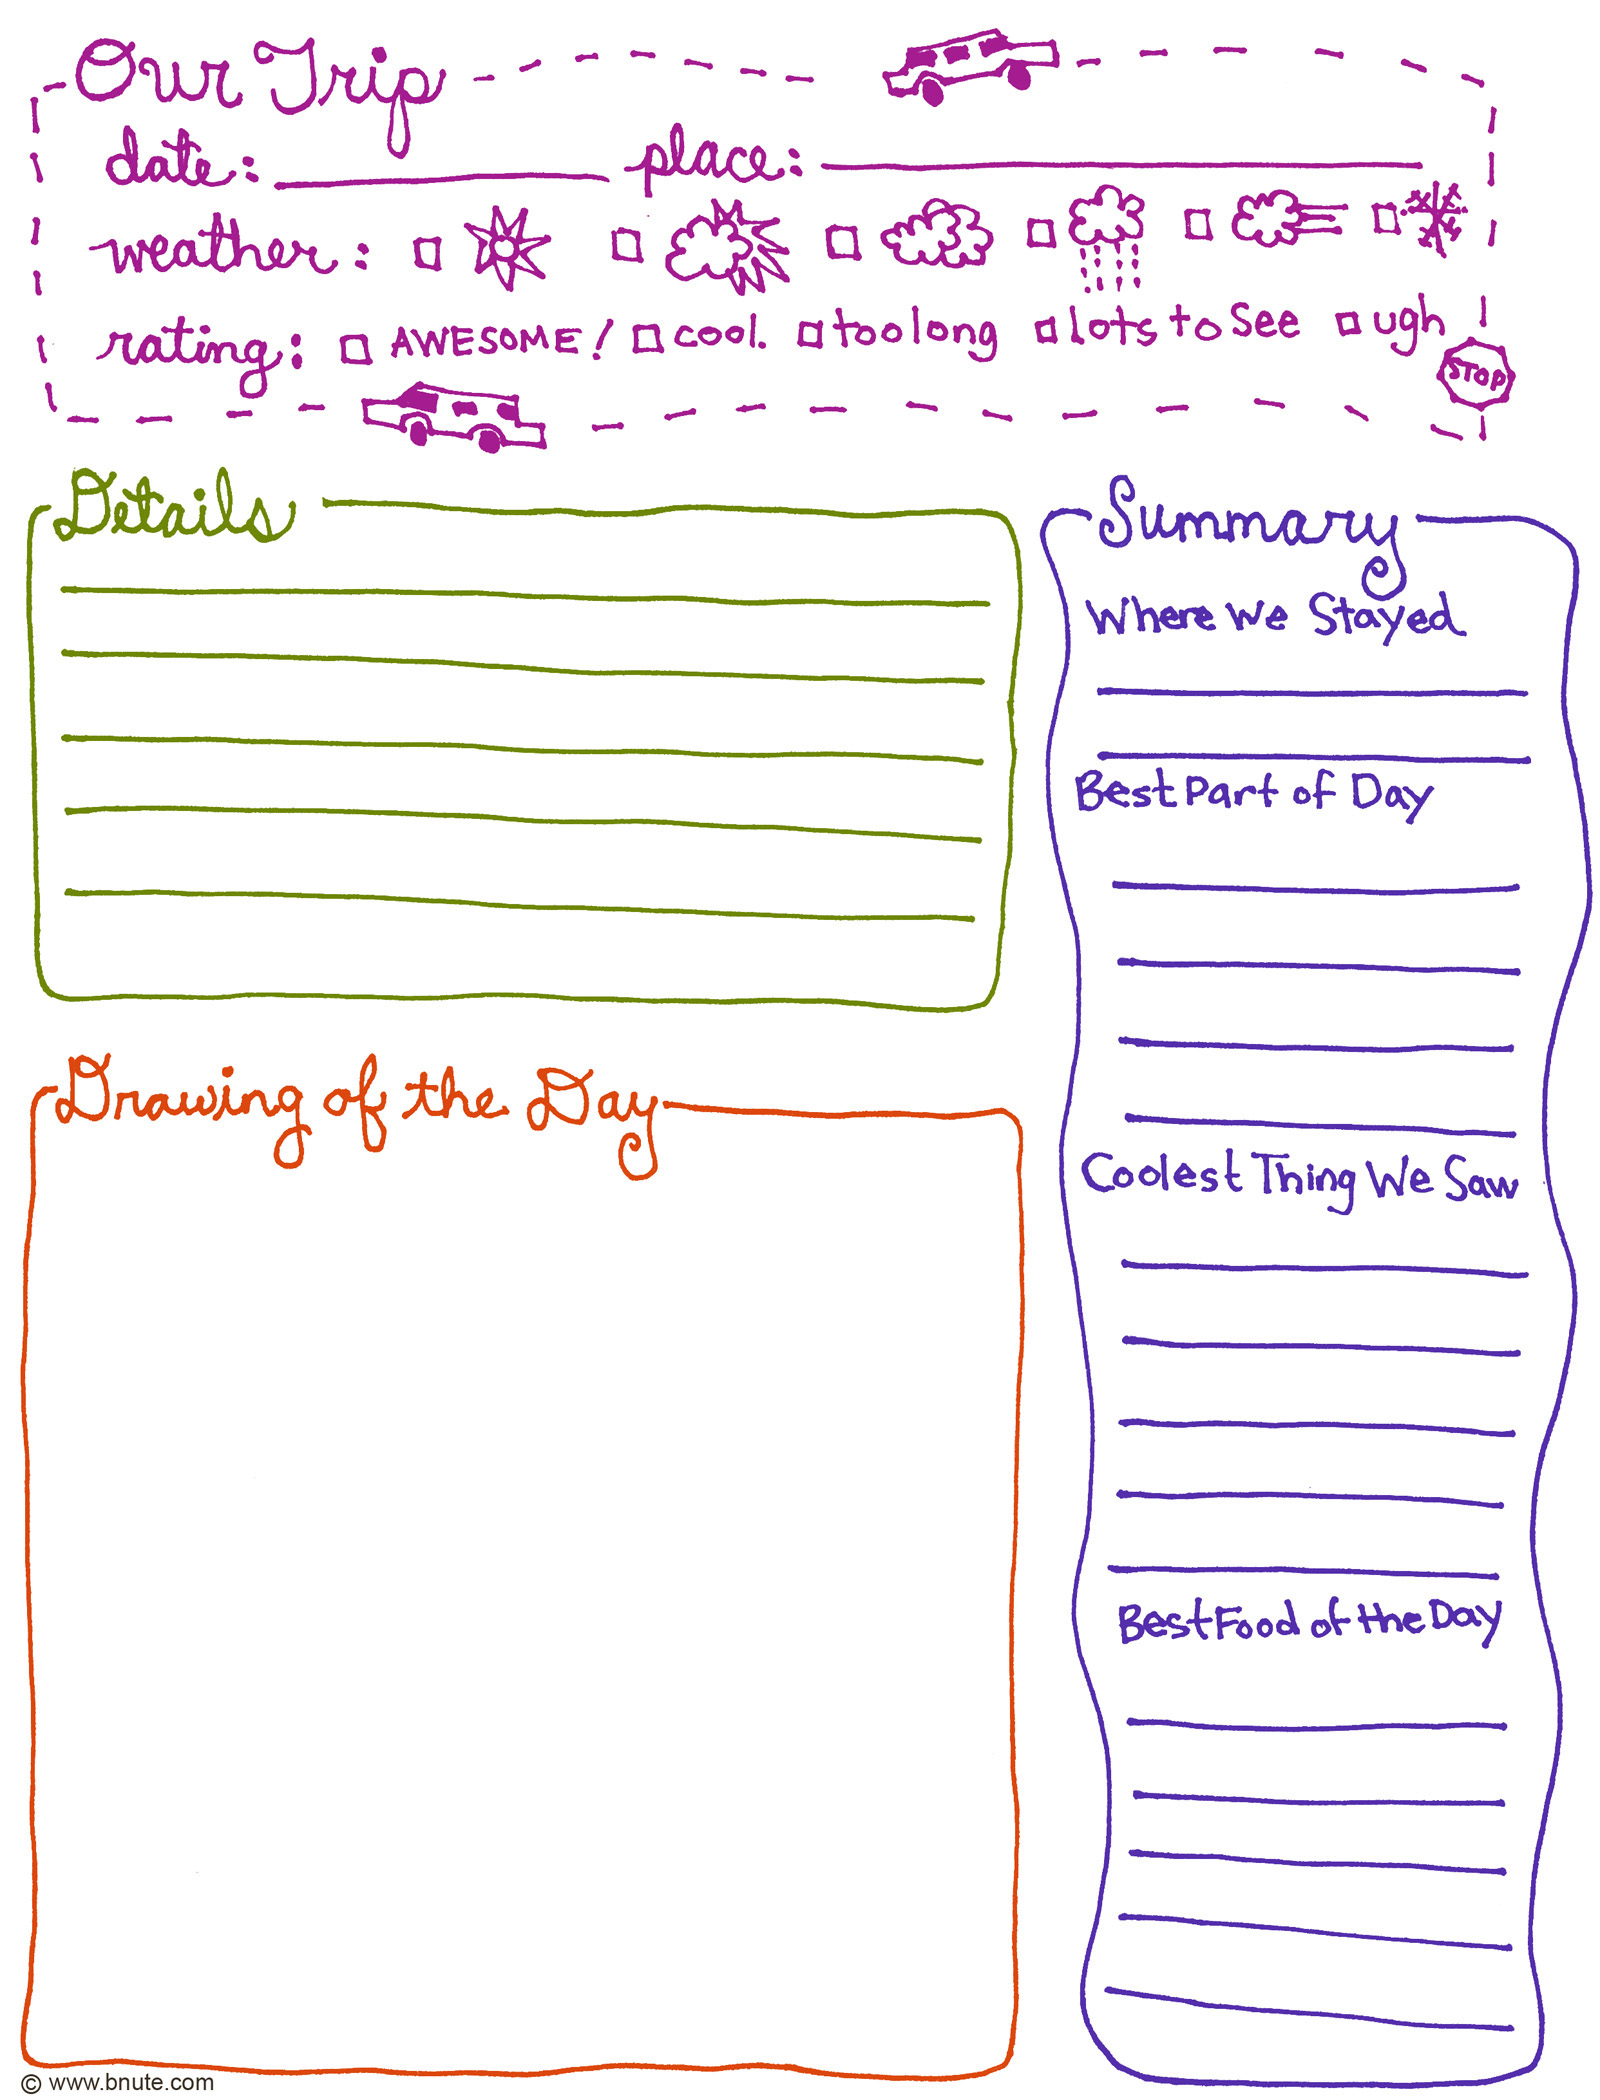 4 Images of Free Printable Daily Journal Pages